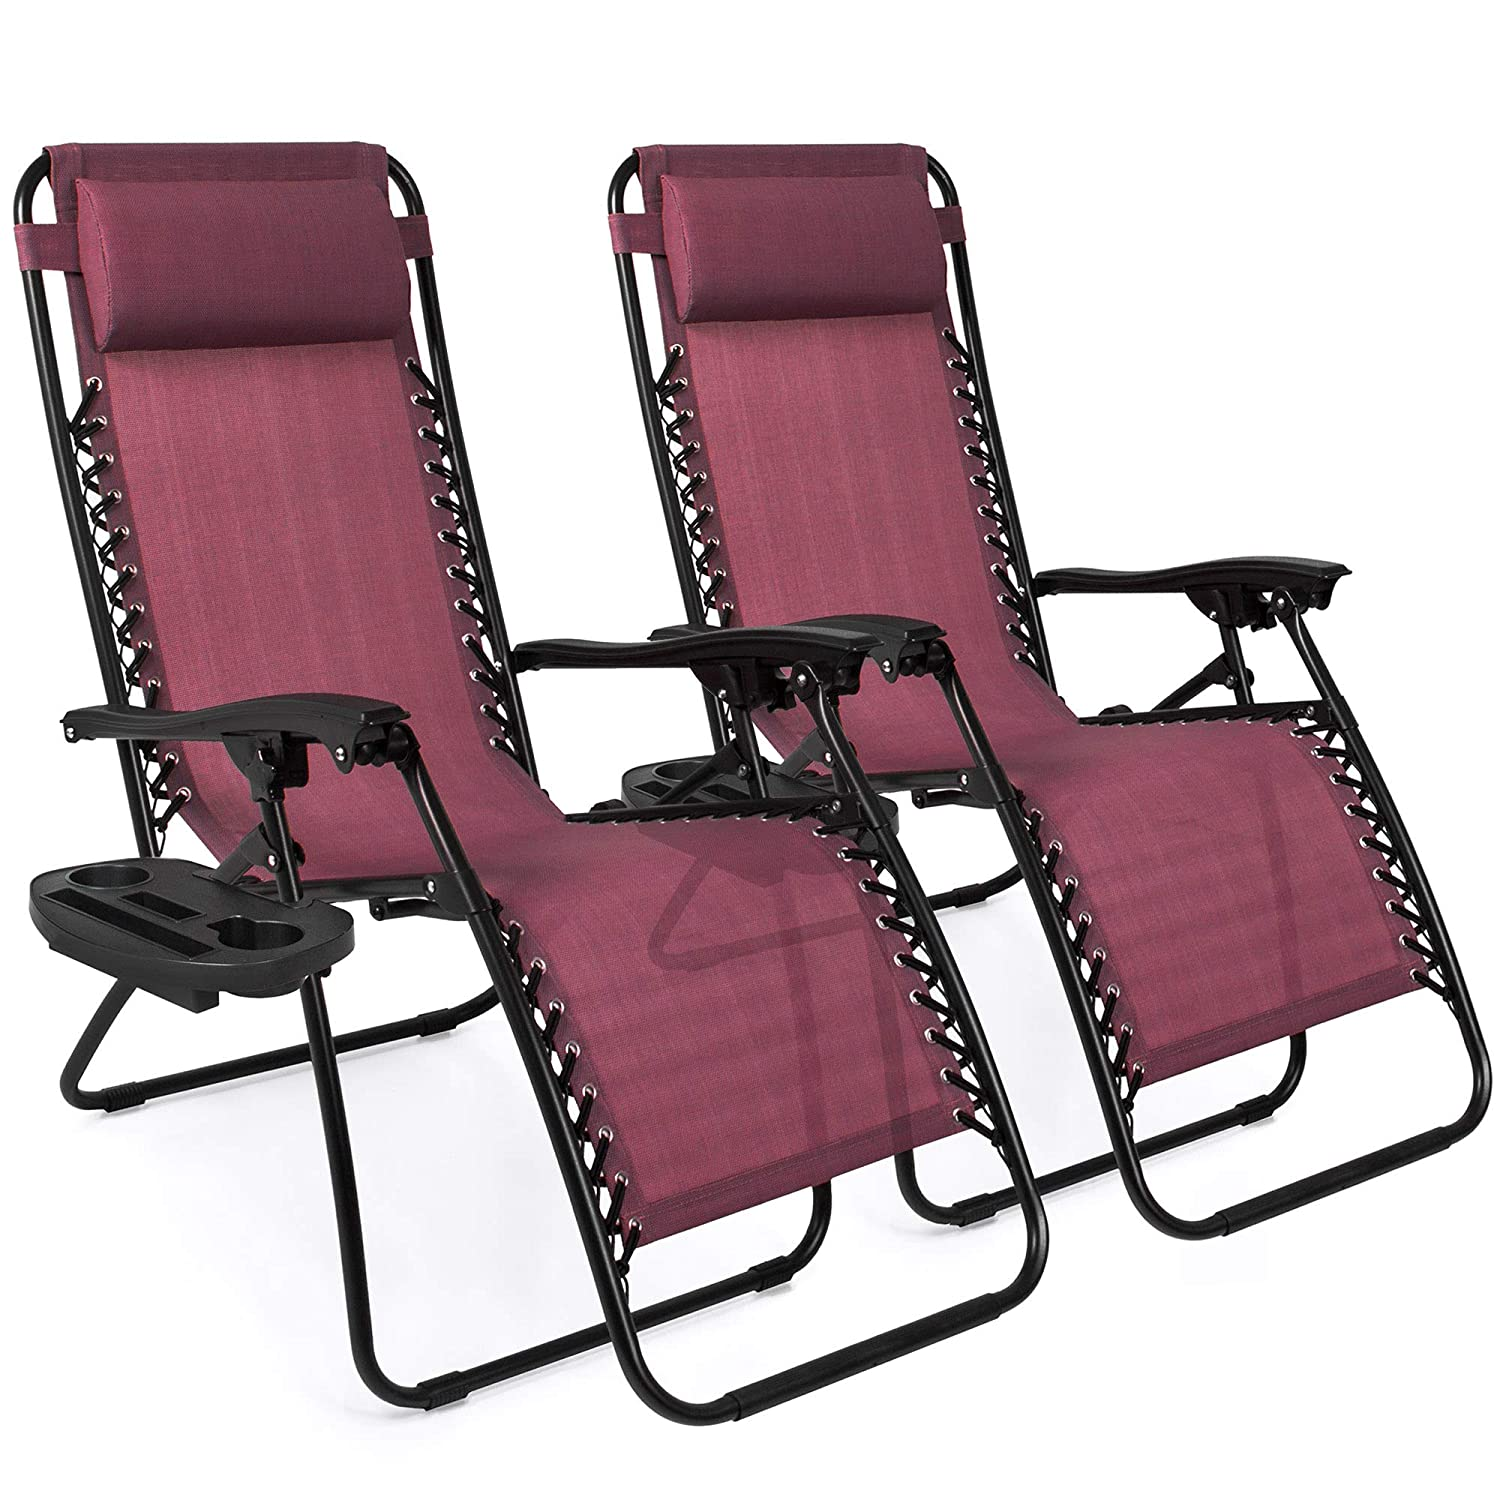 Best Choice Products Set of 2 Adjustable Zero Gravity Lounge Chair Recliners for Patio, Pool w/Cup Holders - Burgundy